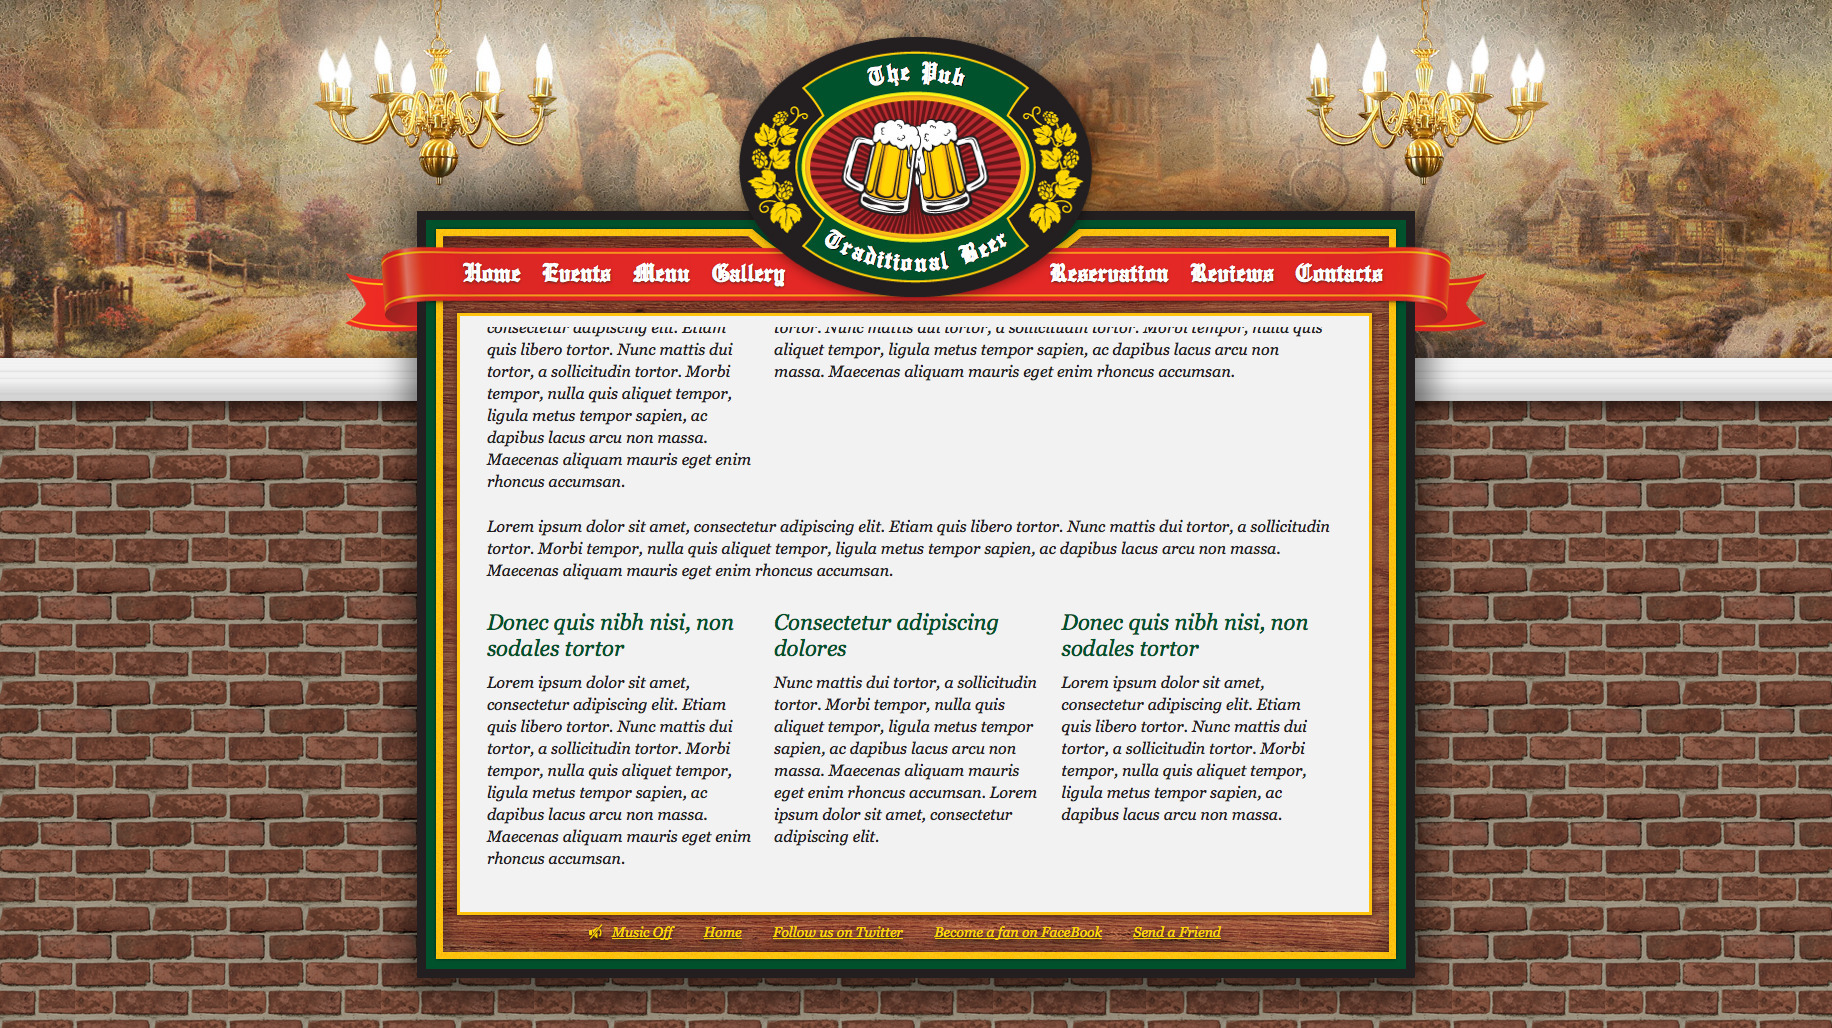 The Pub Traditional Beer - Theme